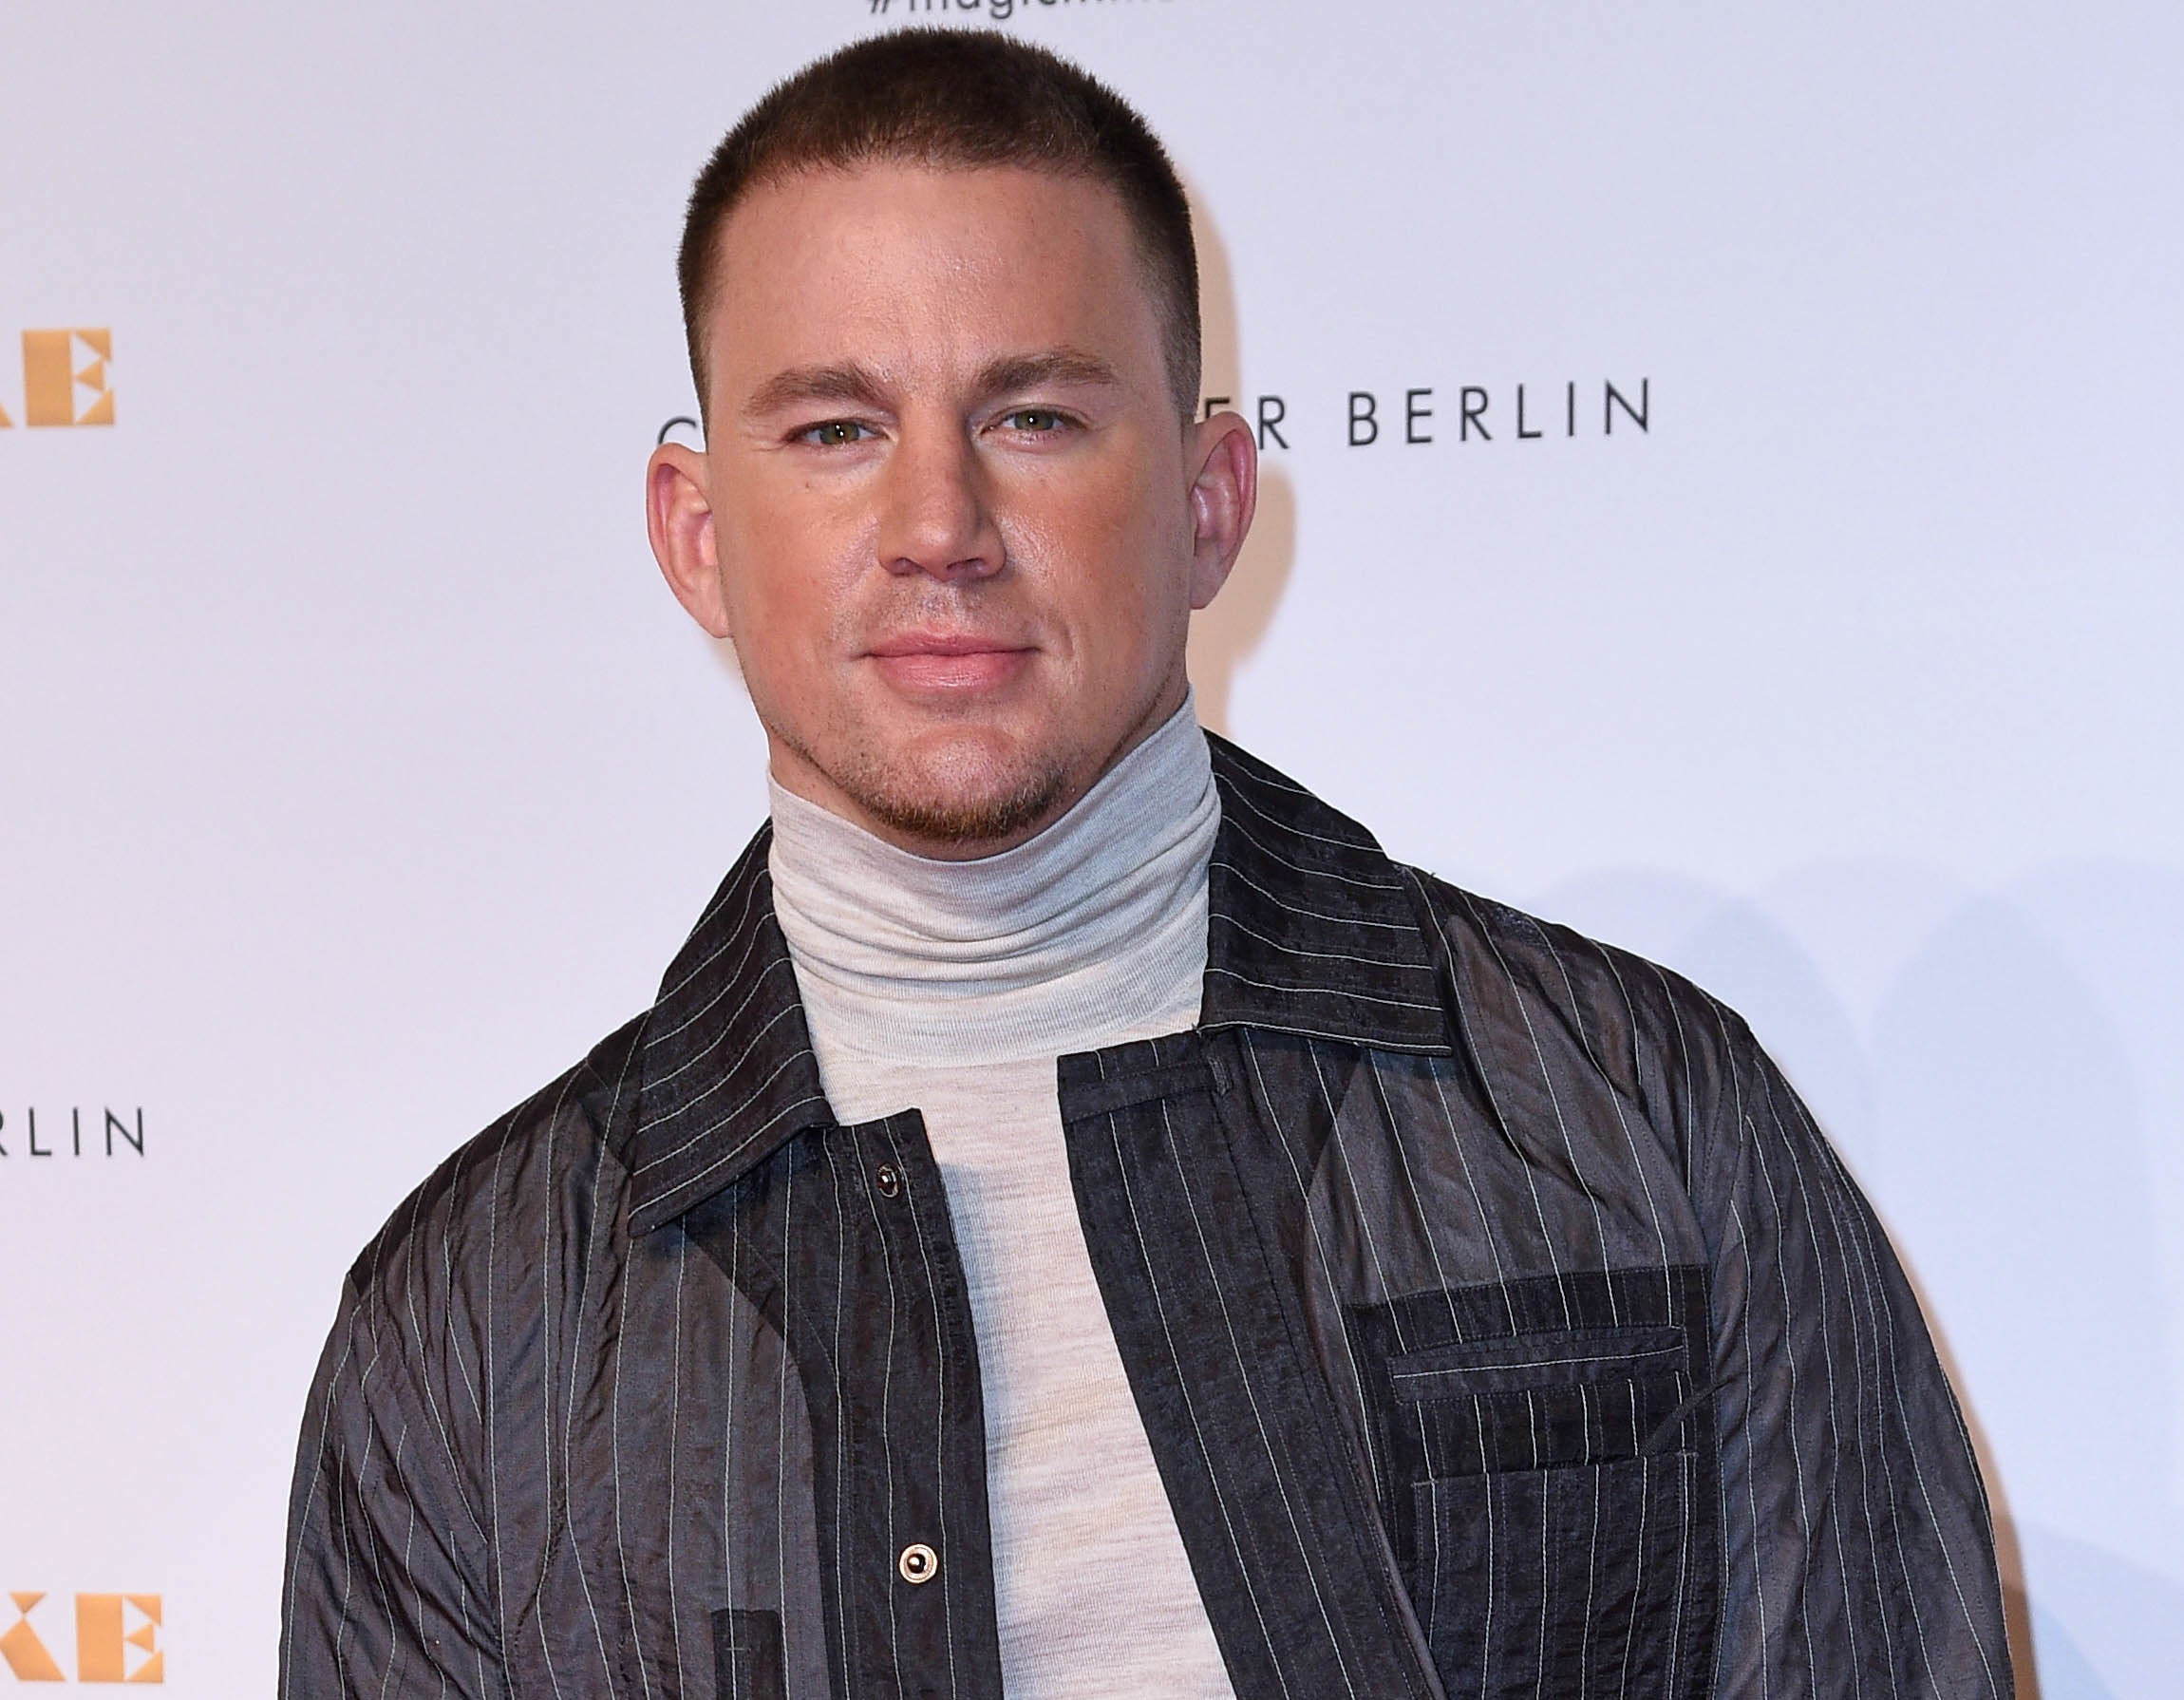 Channing wears a grey turtleneck shirt and pinstripe jacket